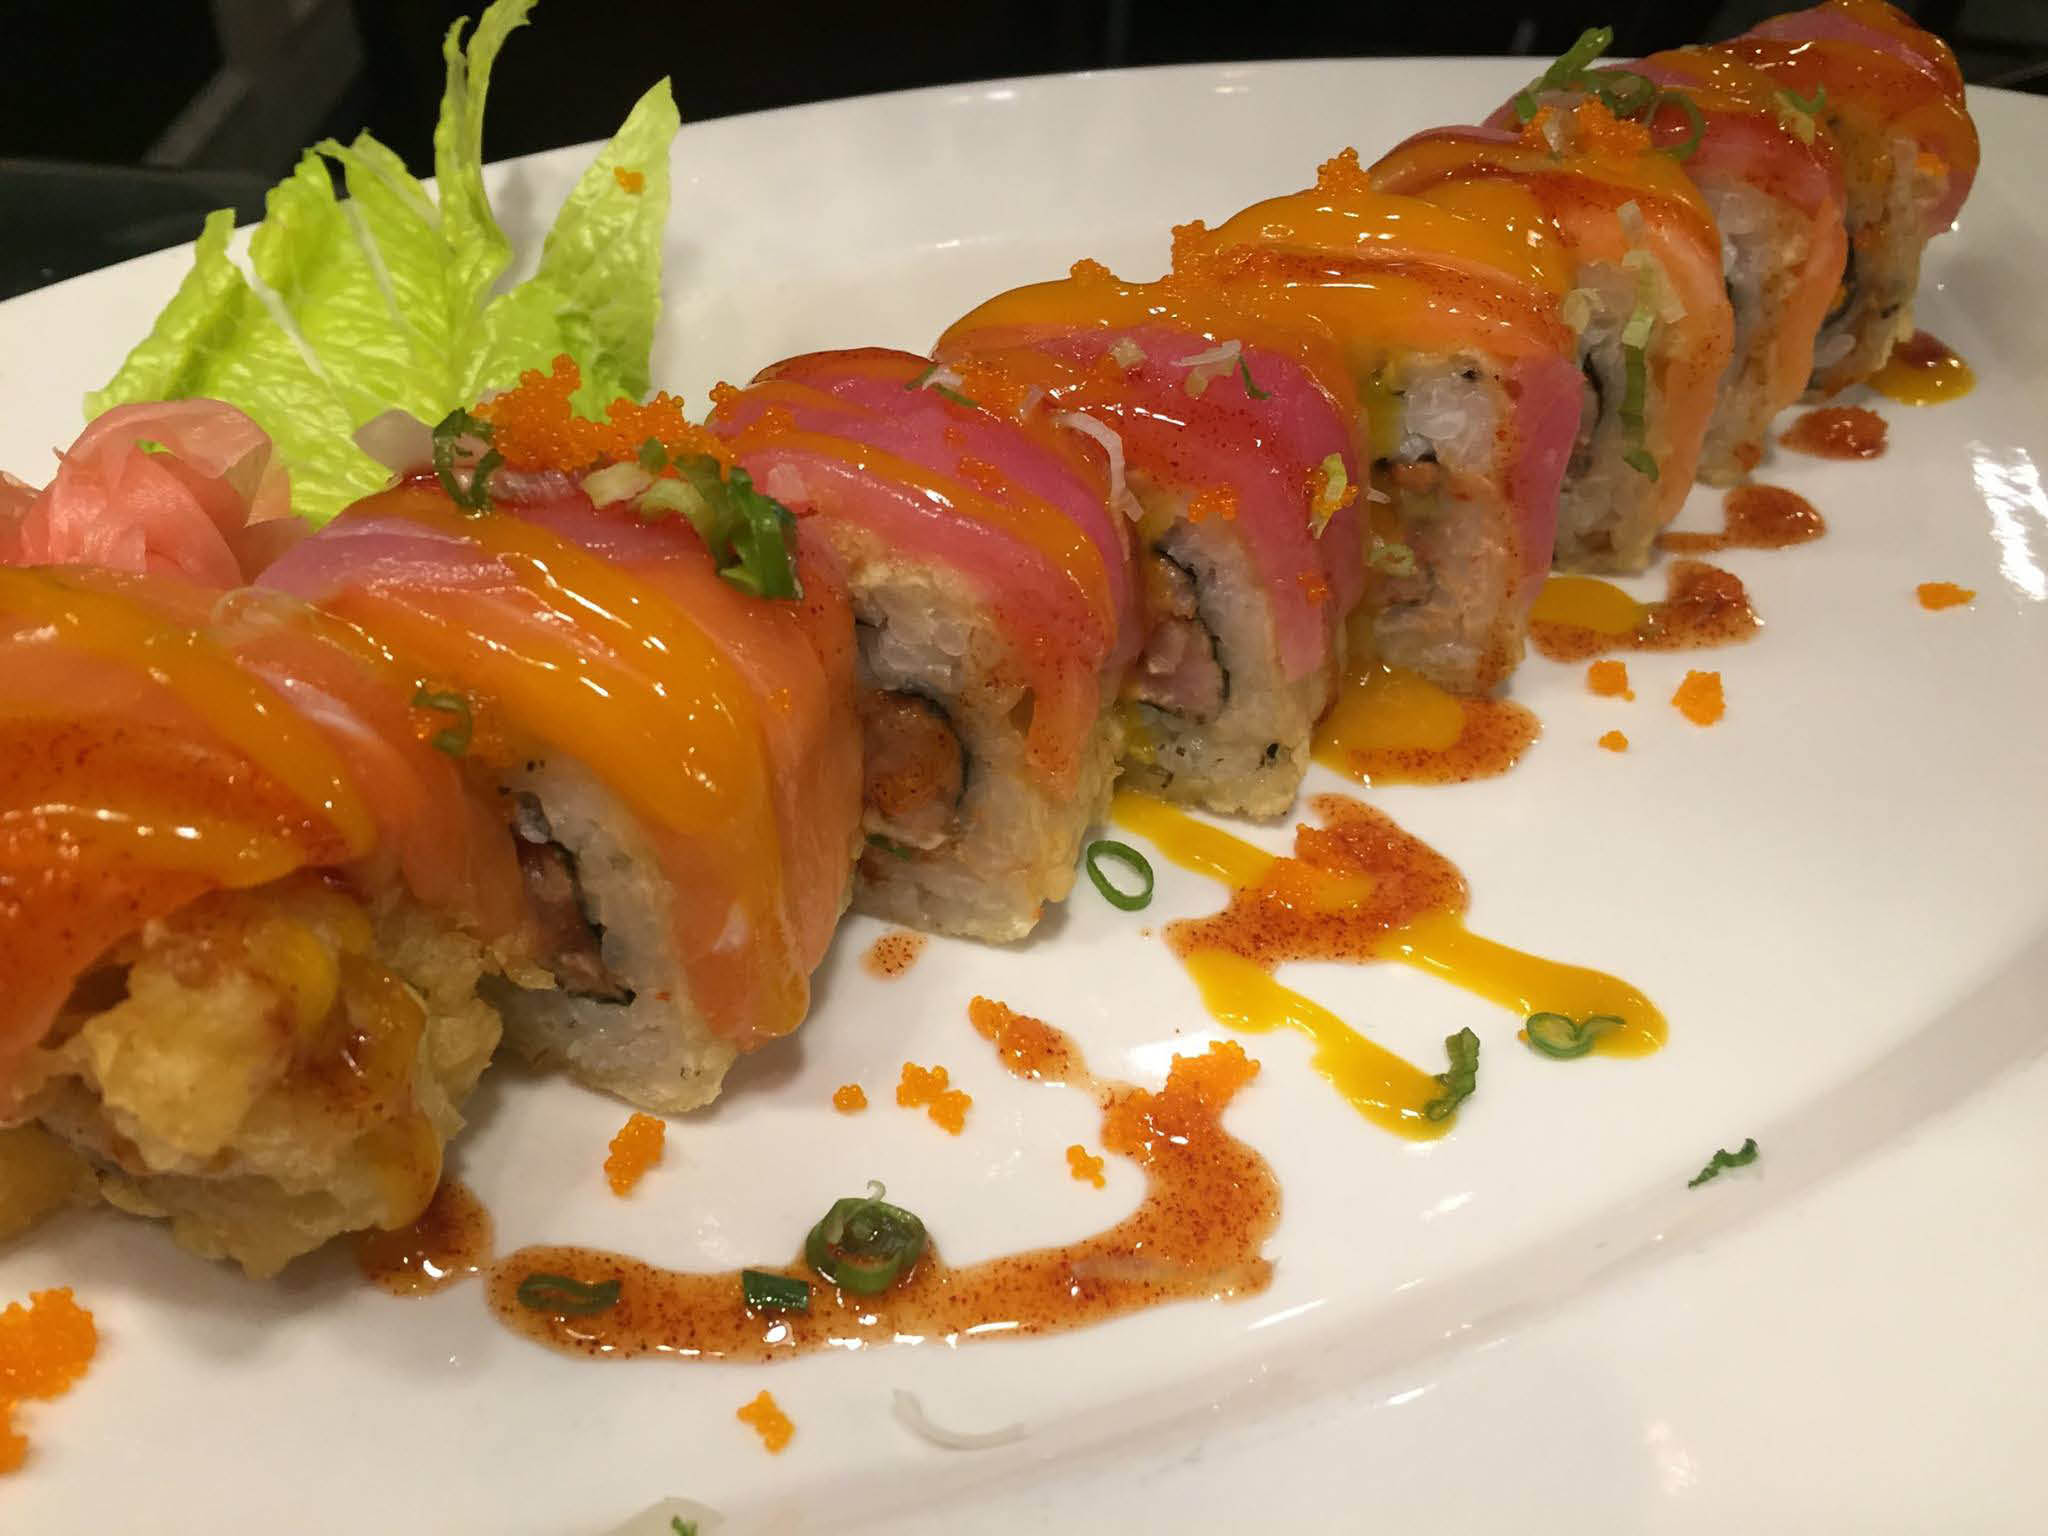 Savory sushi rolls at Tasty Fusion Restaurant in Summerville